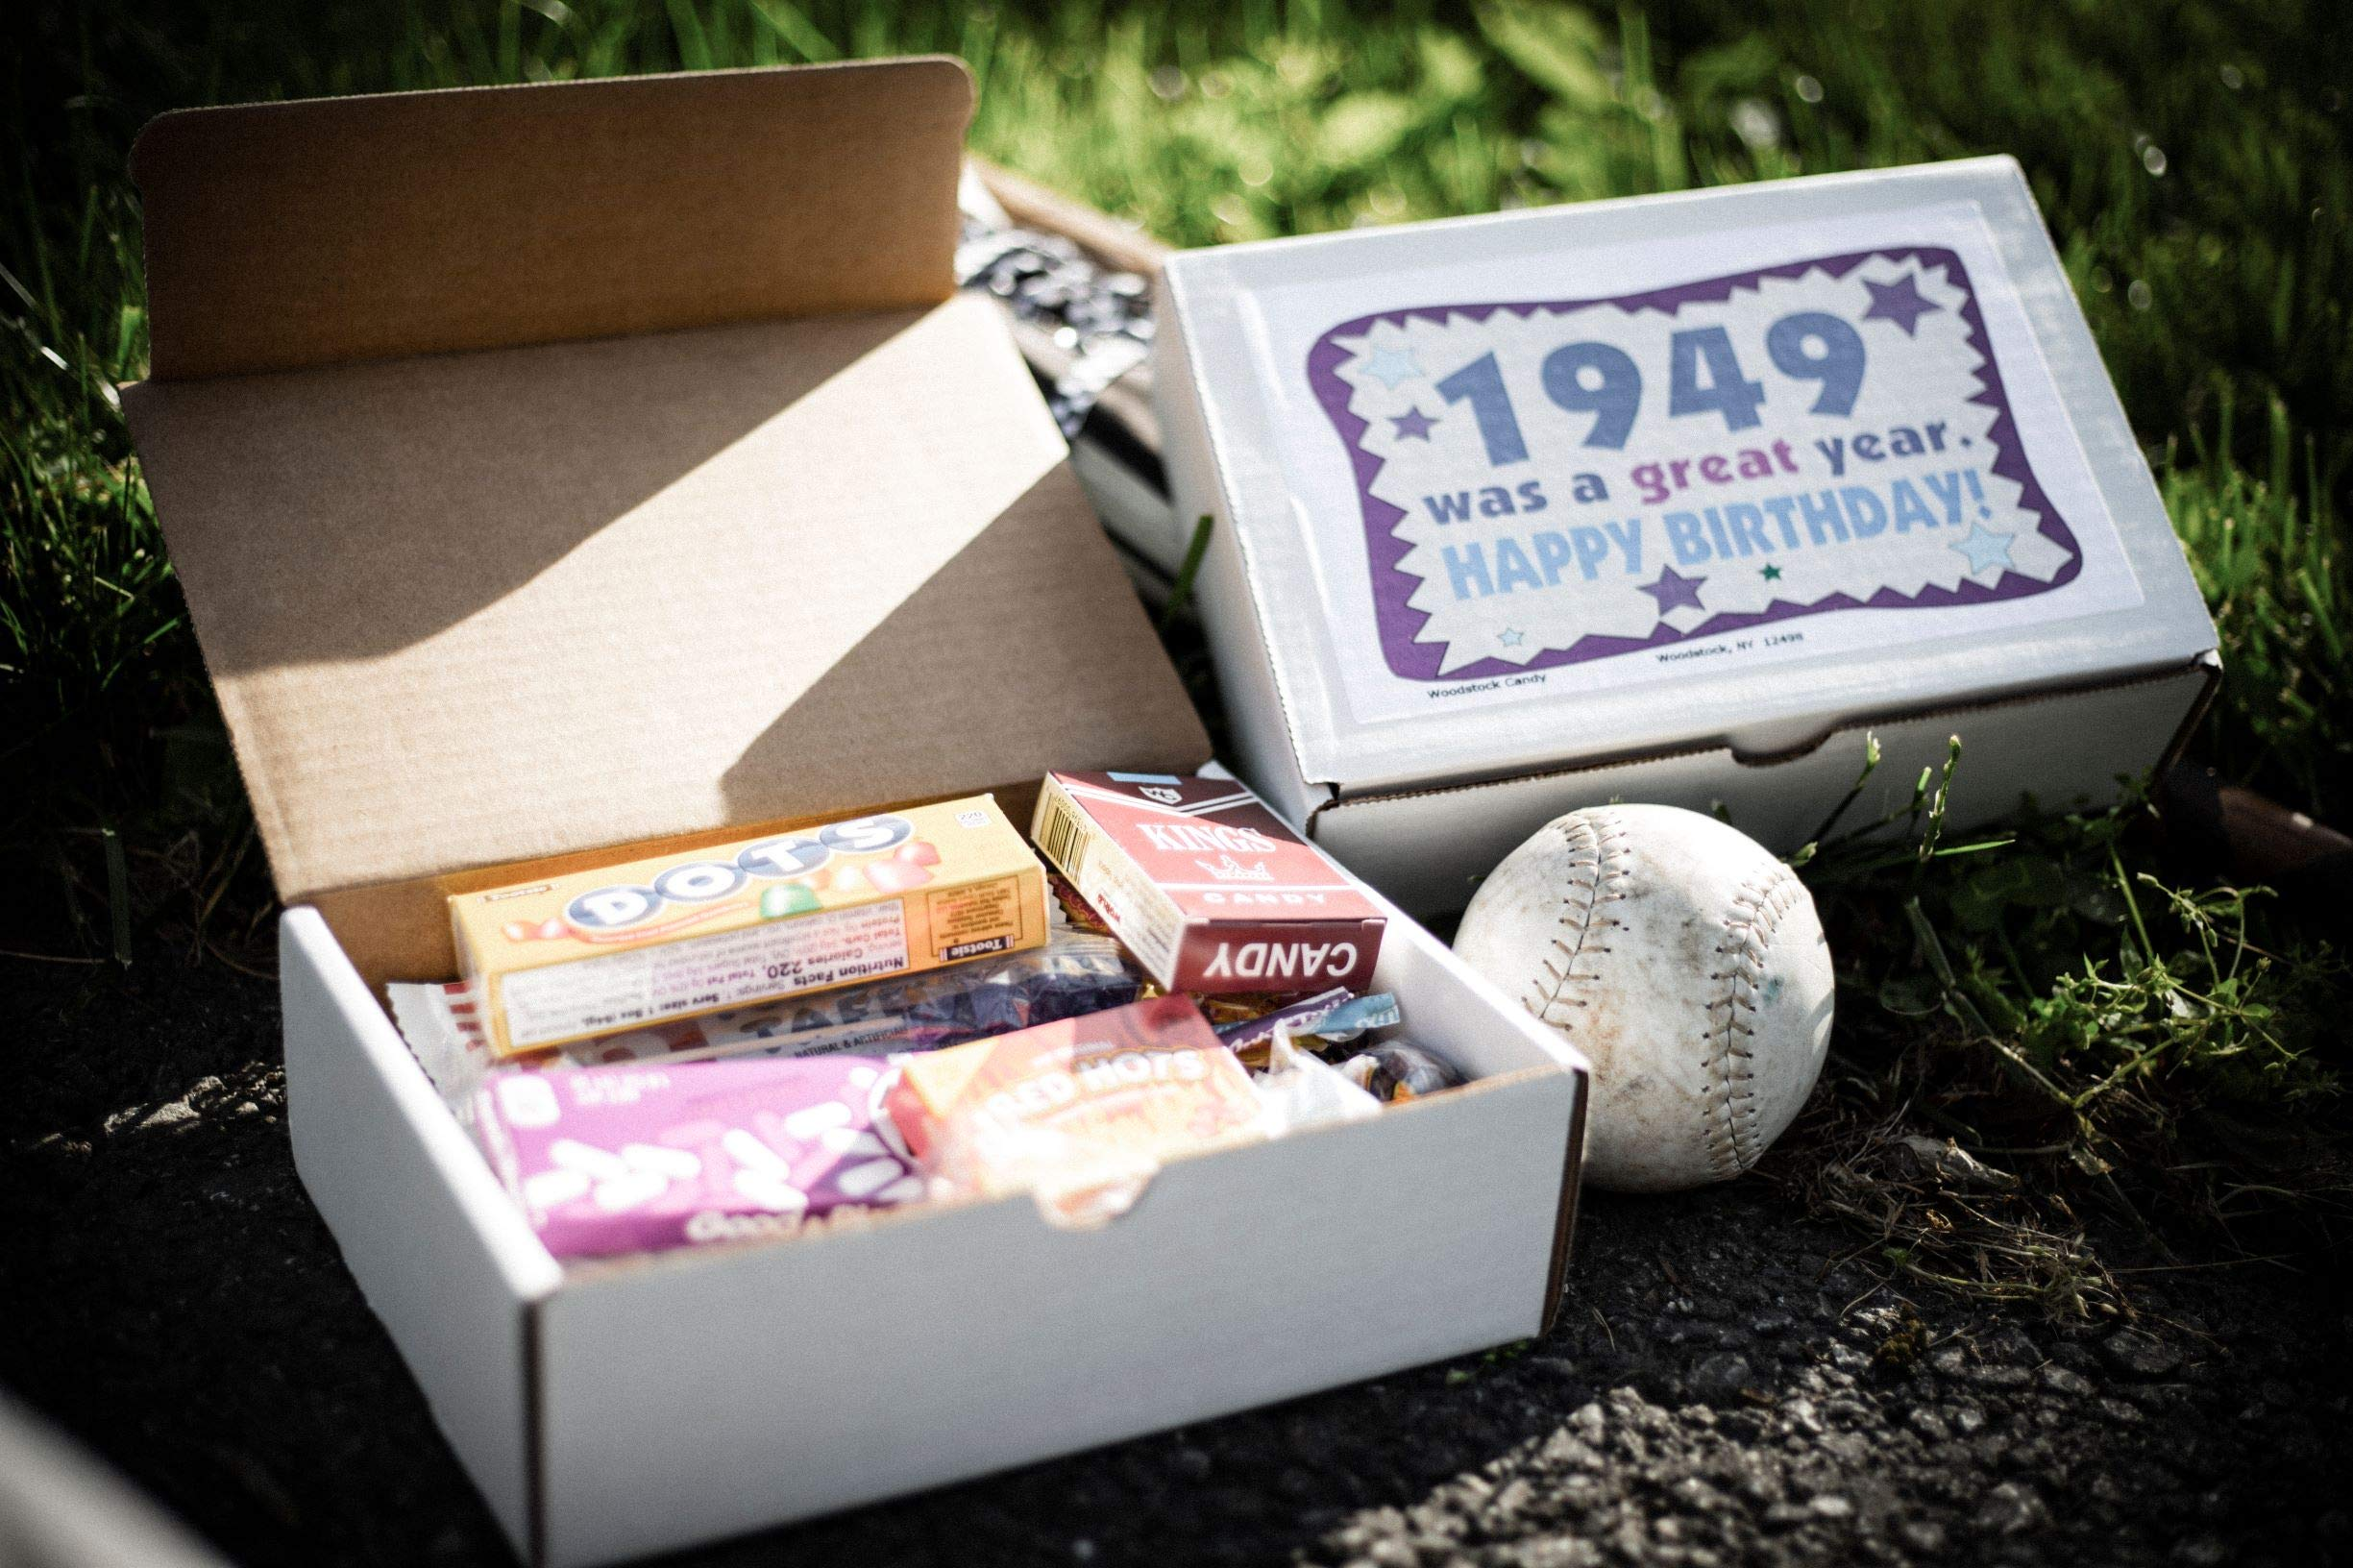 Woodstock Candy ~ 70th Birthday Gift Box of Retro Vintage Candy Assortment from Childhood for 70 Year Old Men and Women Born 1949 - Great Idea for Mom or Dad - Jr by Woodstock Candy (Image #4)